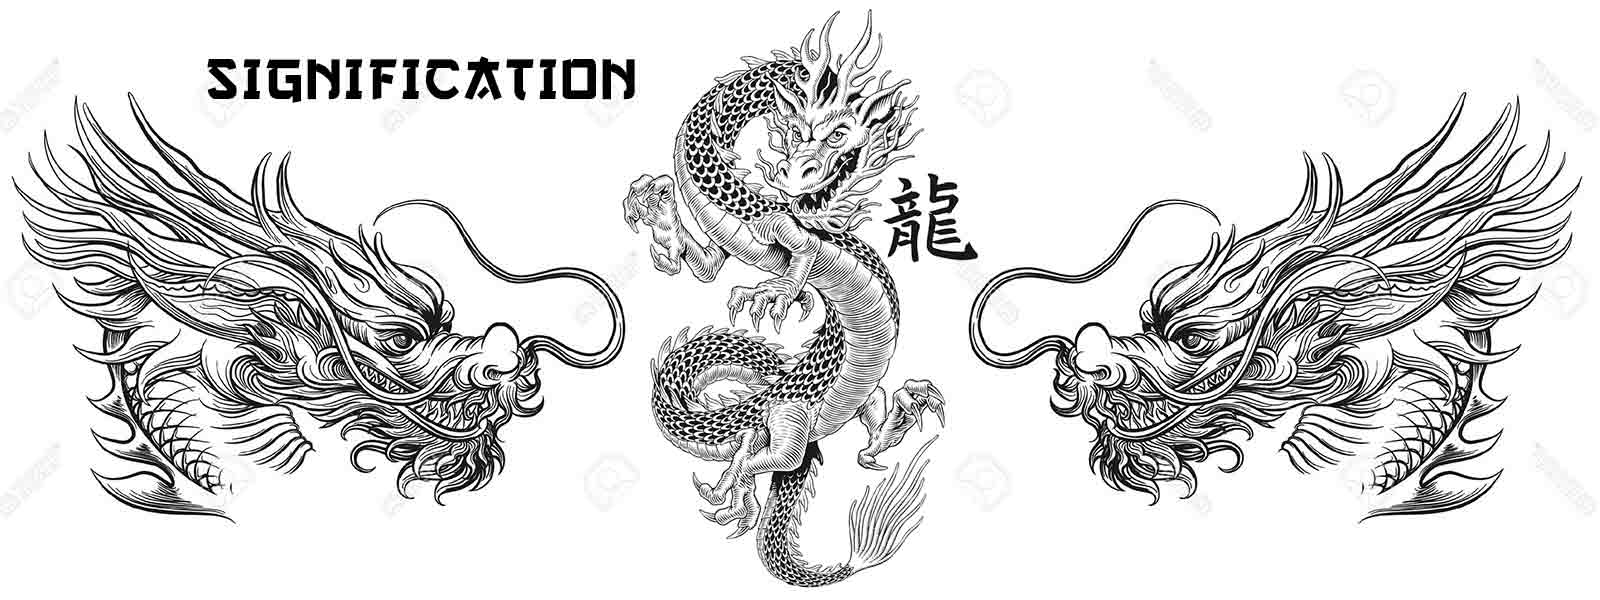 Dragon china meaning